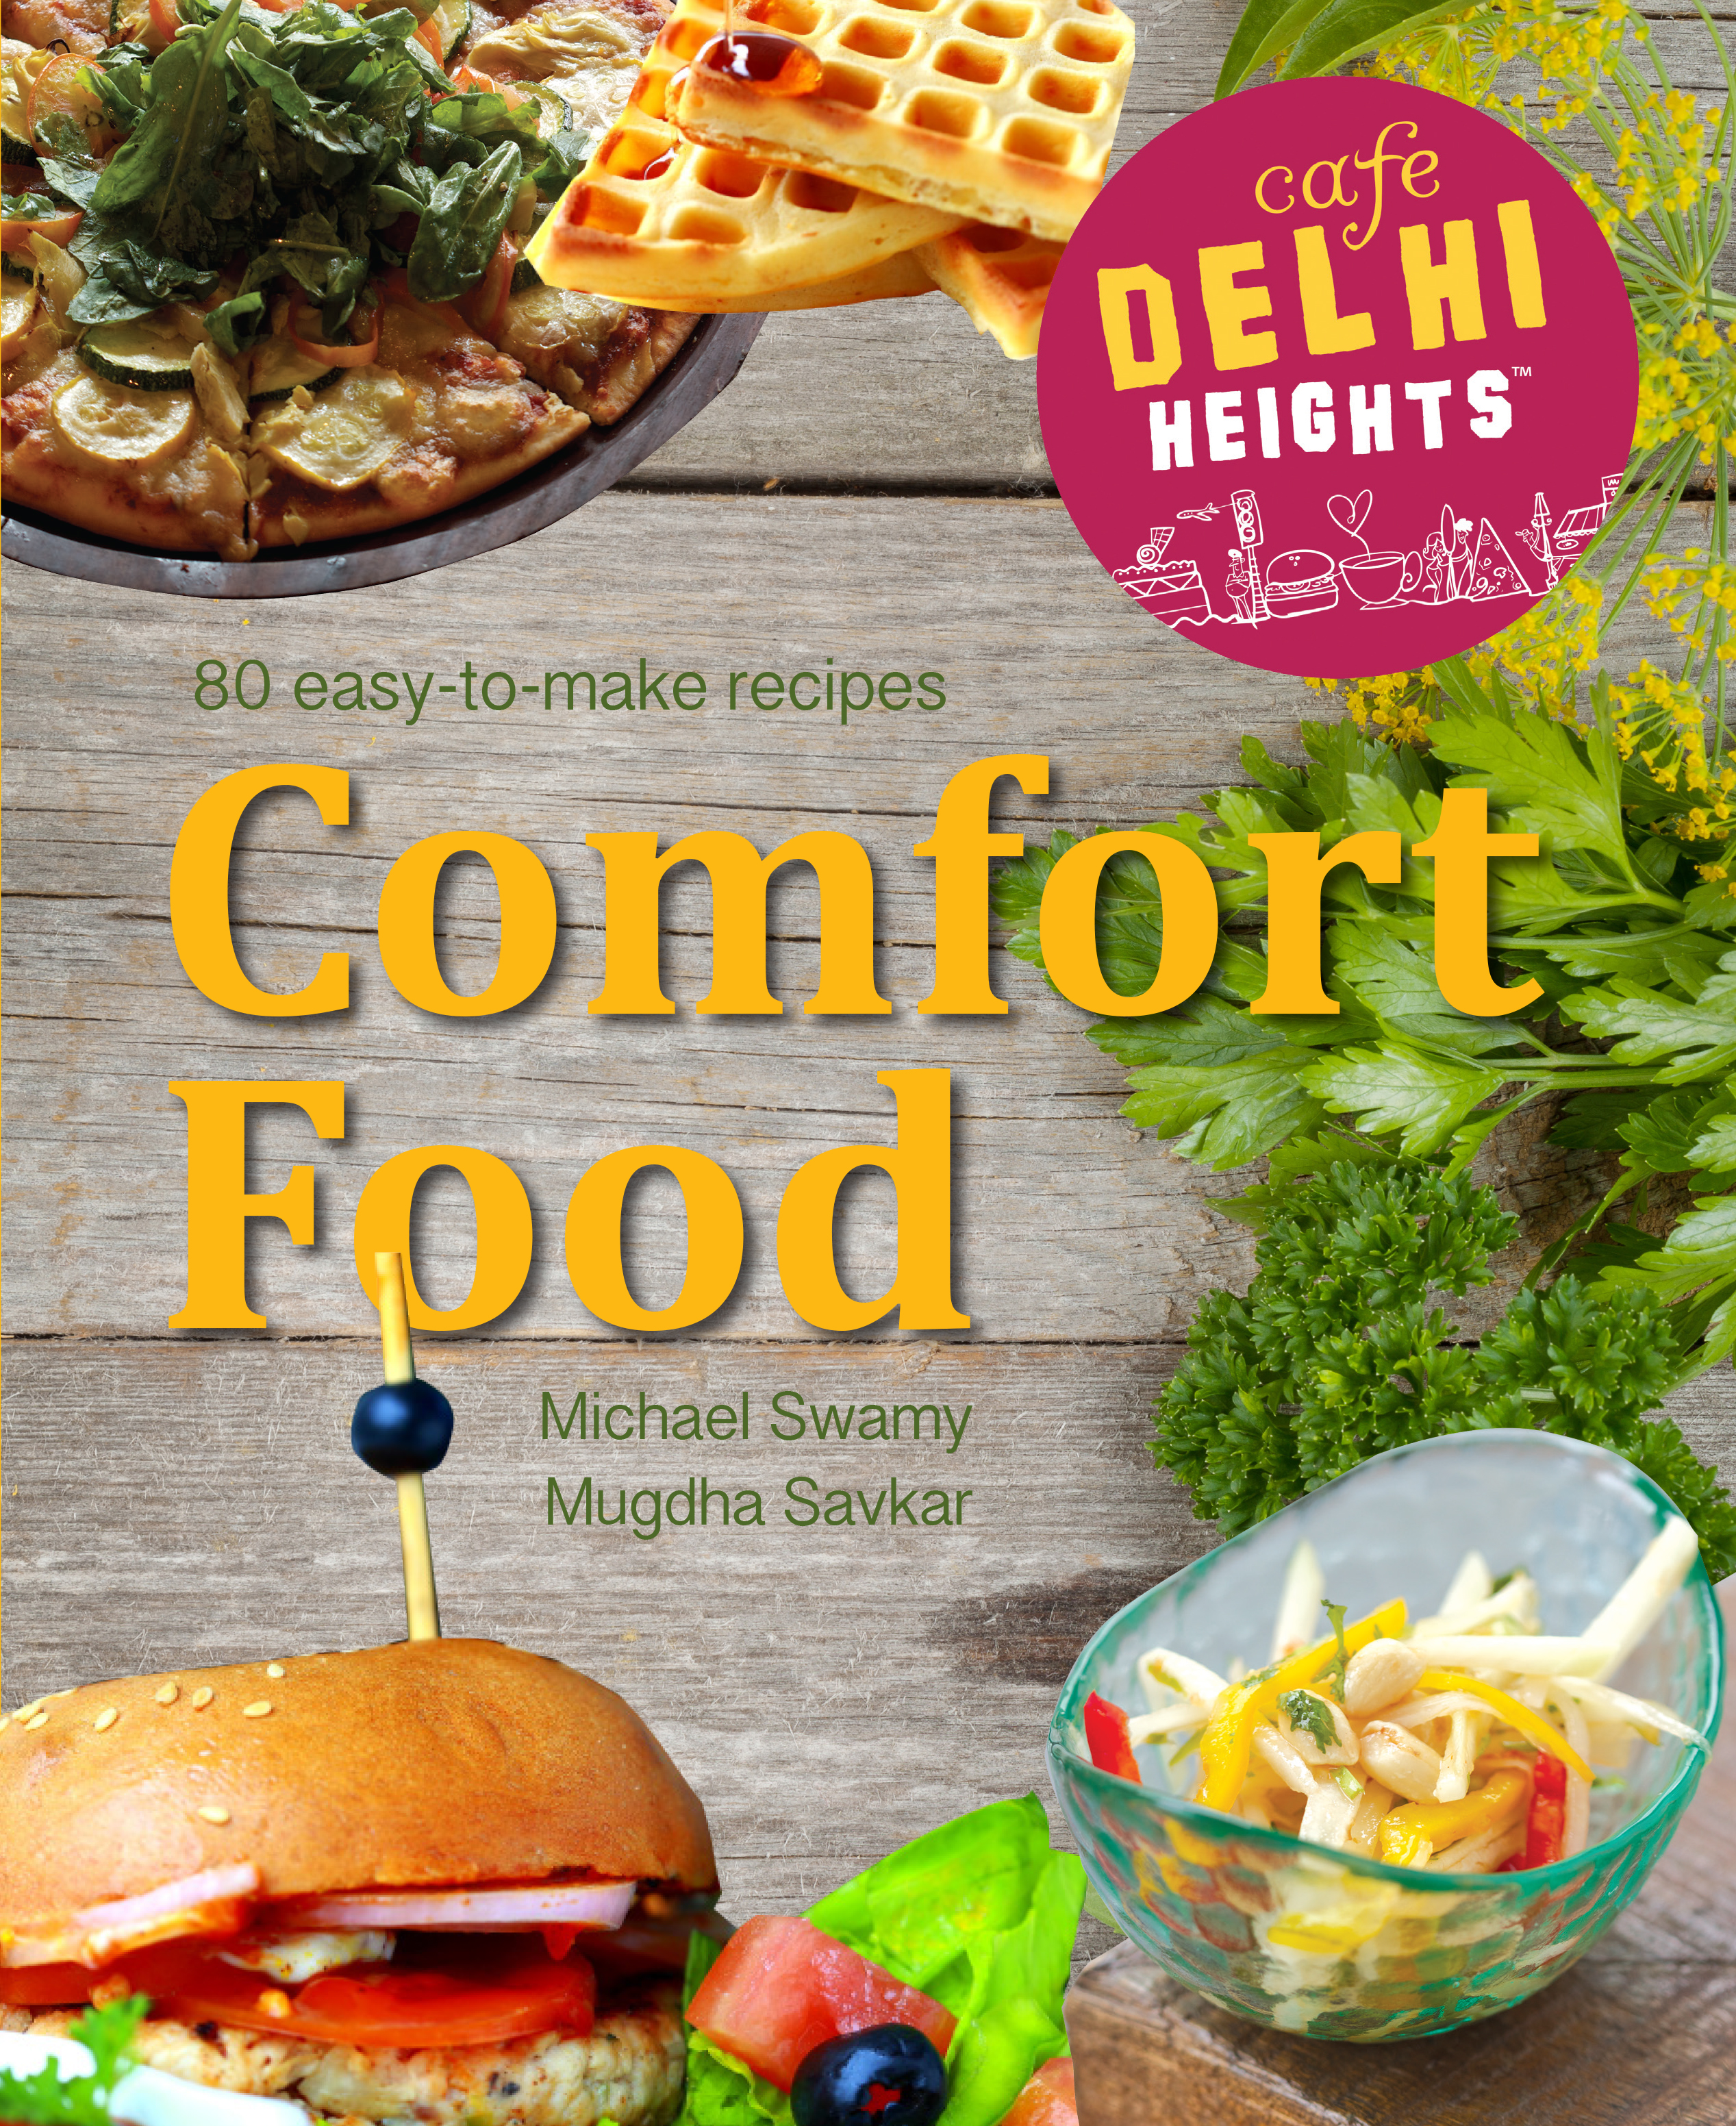 Virat Kohli Launches COMFORT FOOD